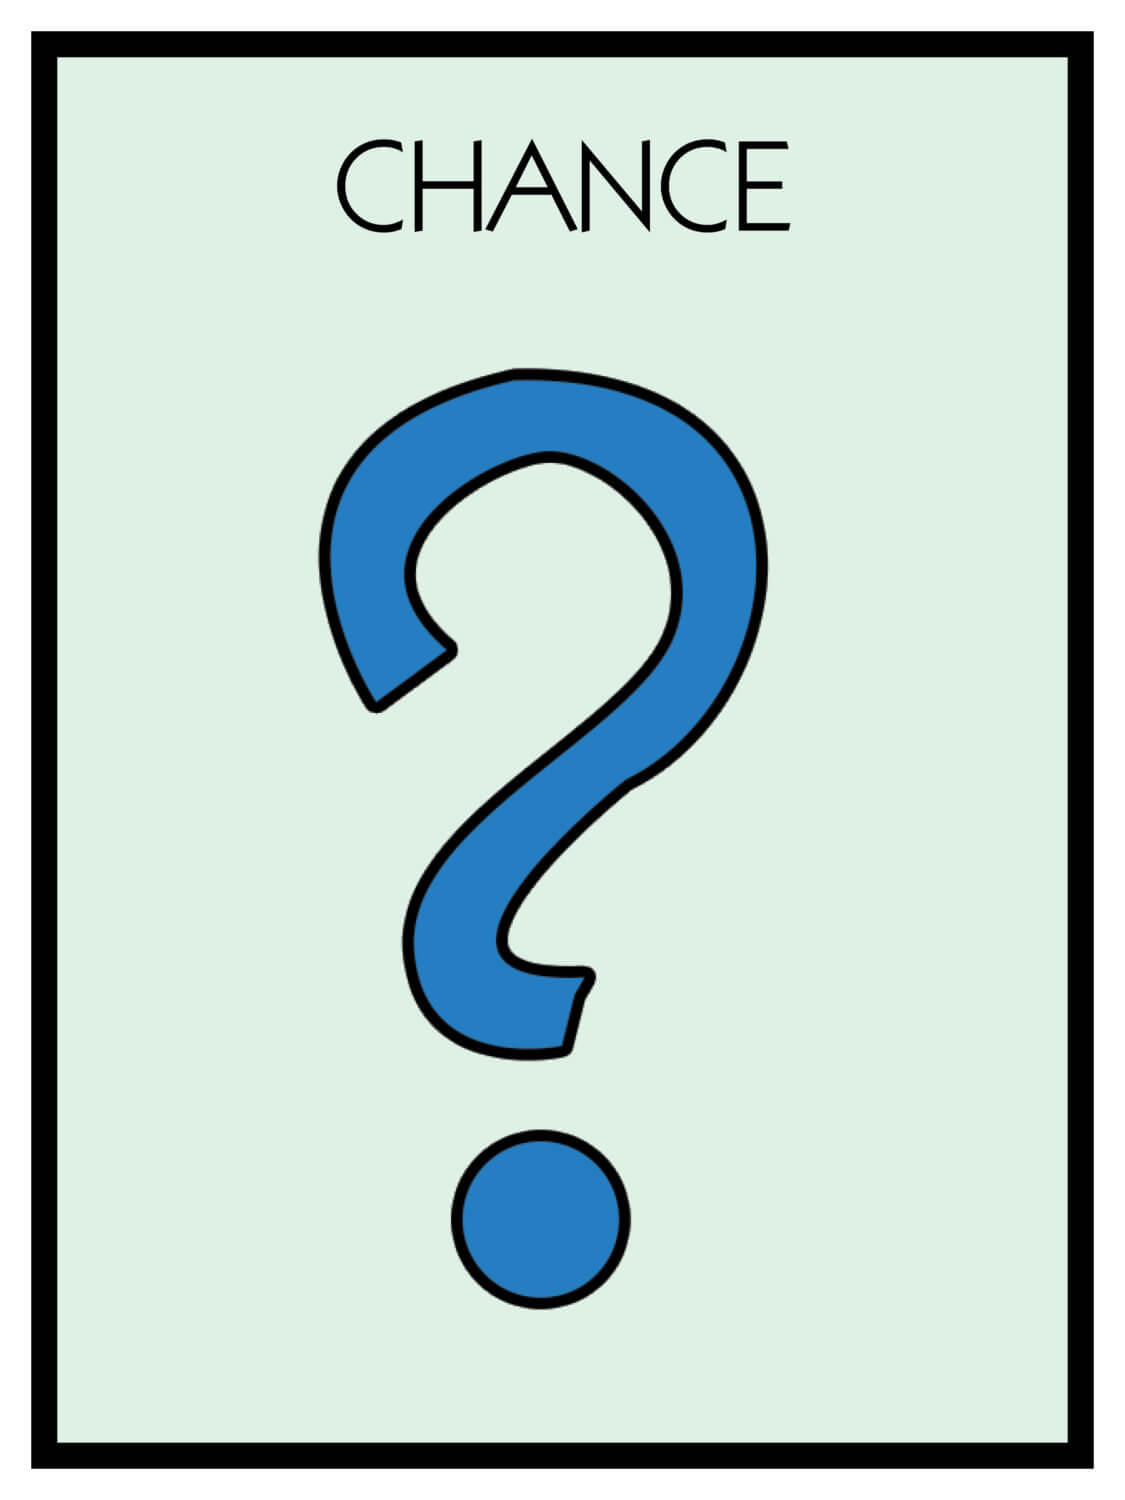 Monopoly Chance Cards Template ] - Card Template 187 Pertaining To Chance Card Template